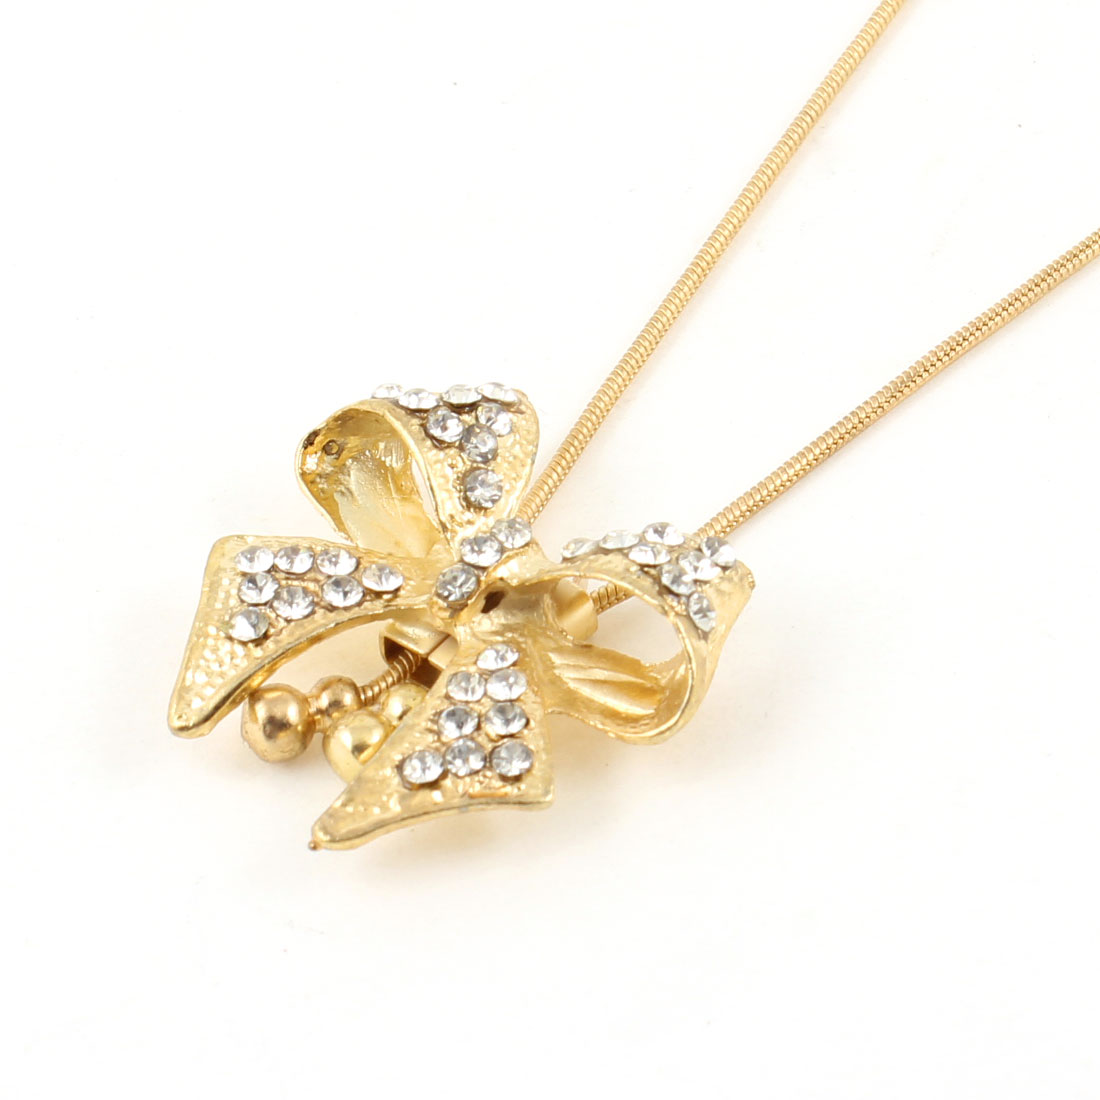 Gold Tone Rhinestones Bowknot Pendant Long Chain Sweater Necklace